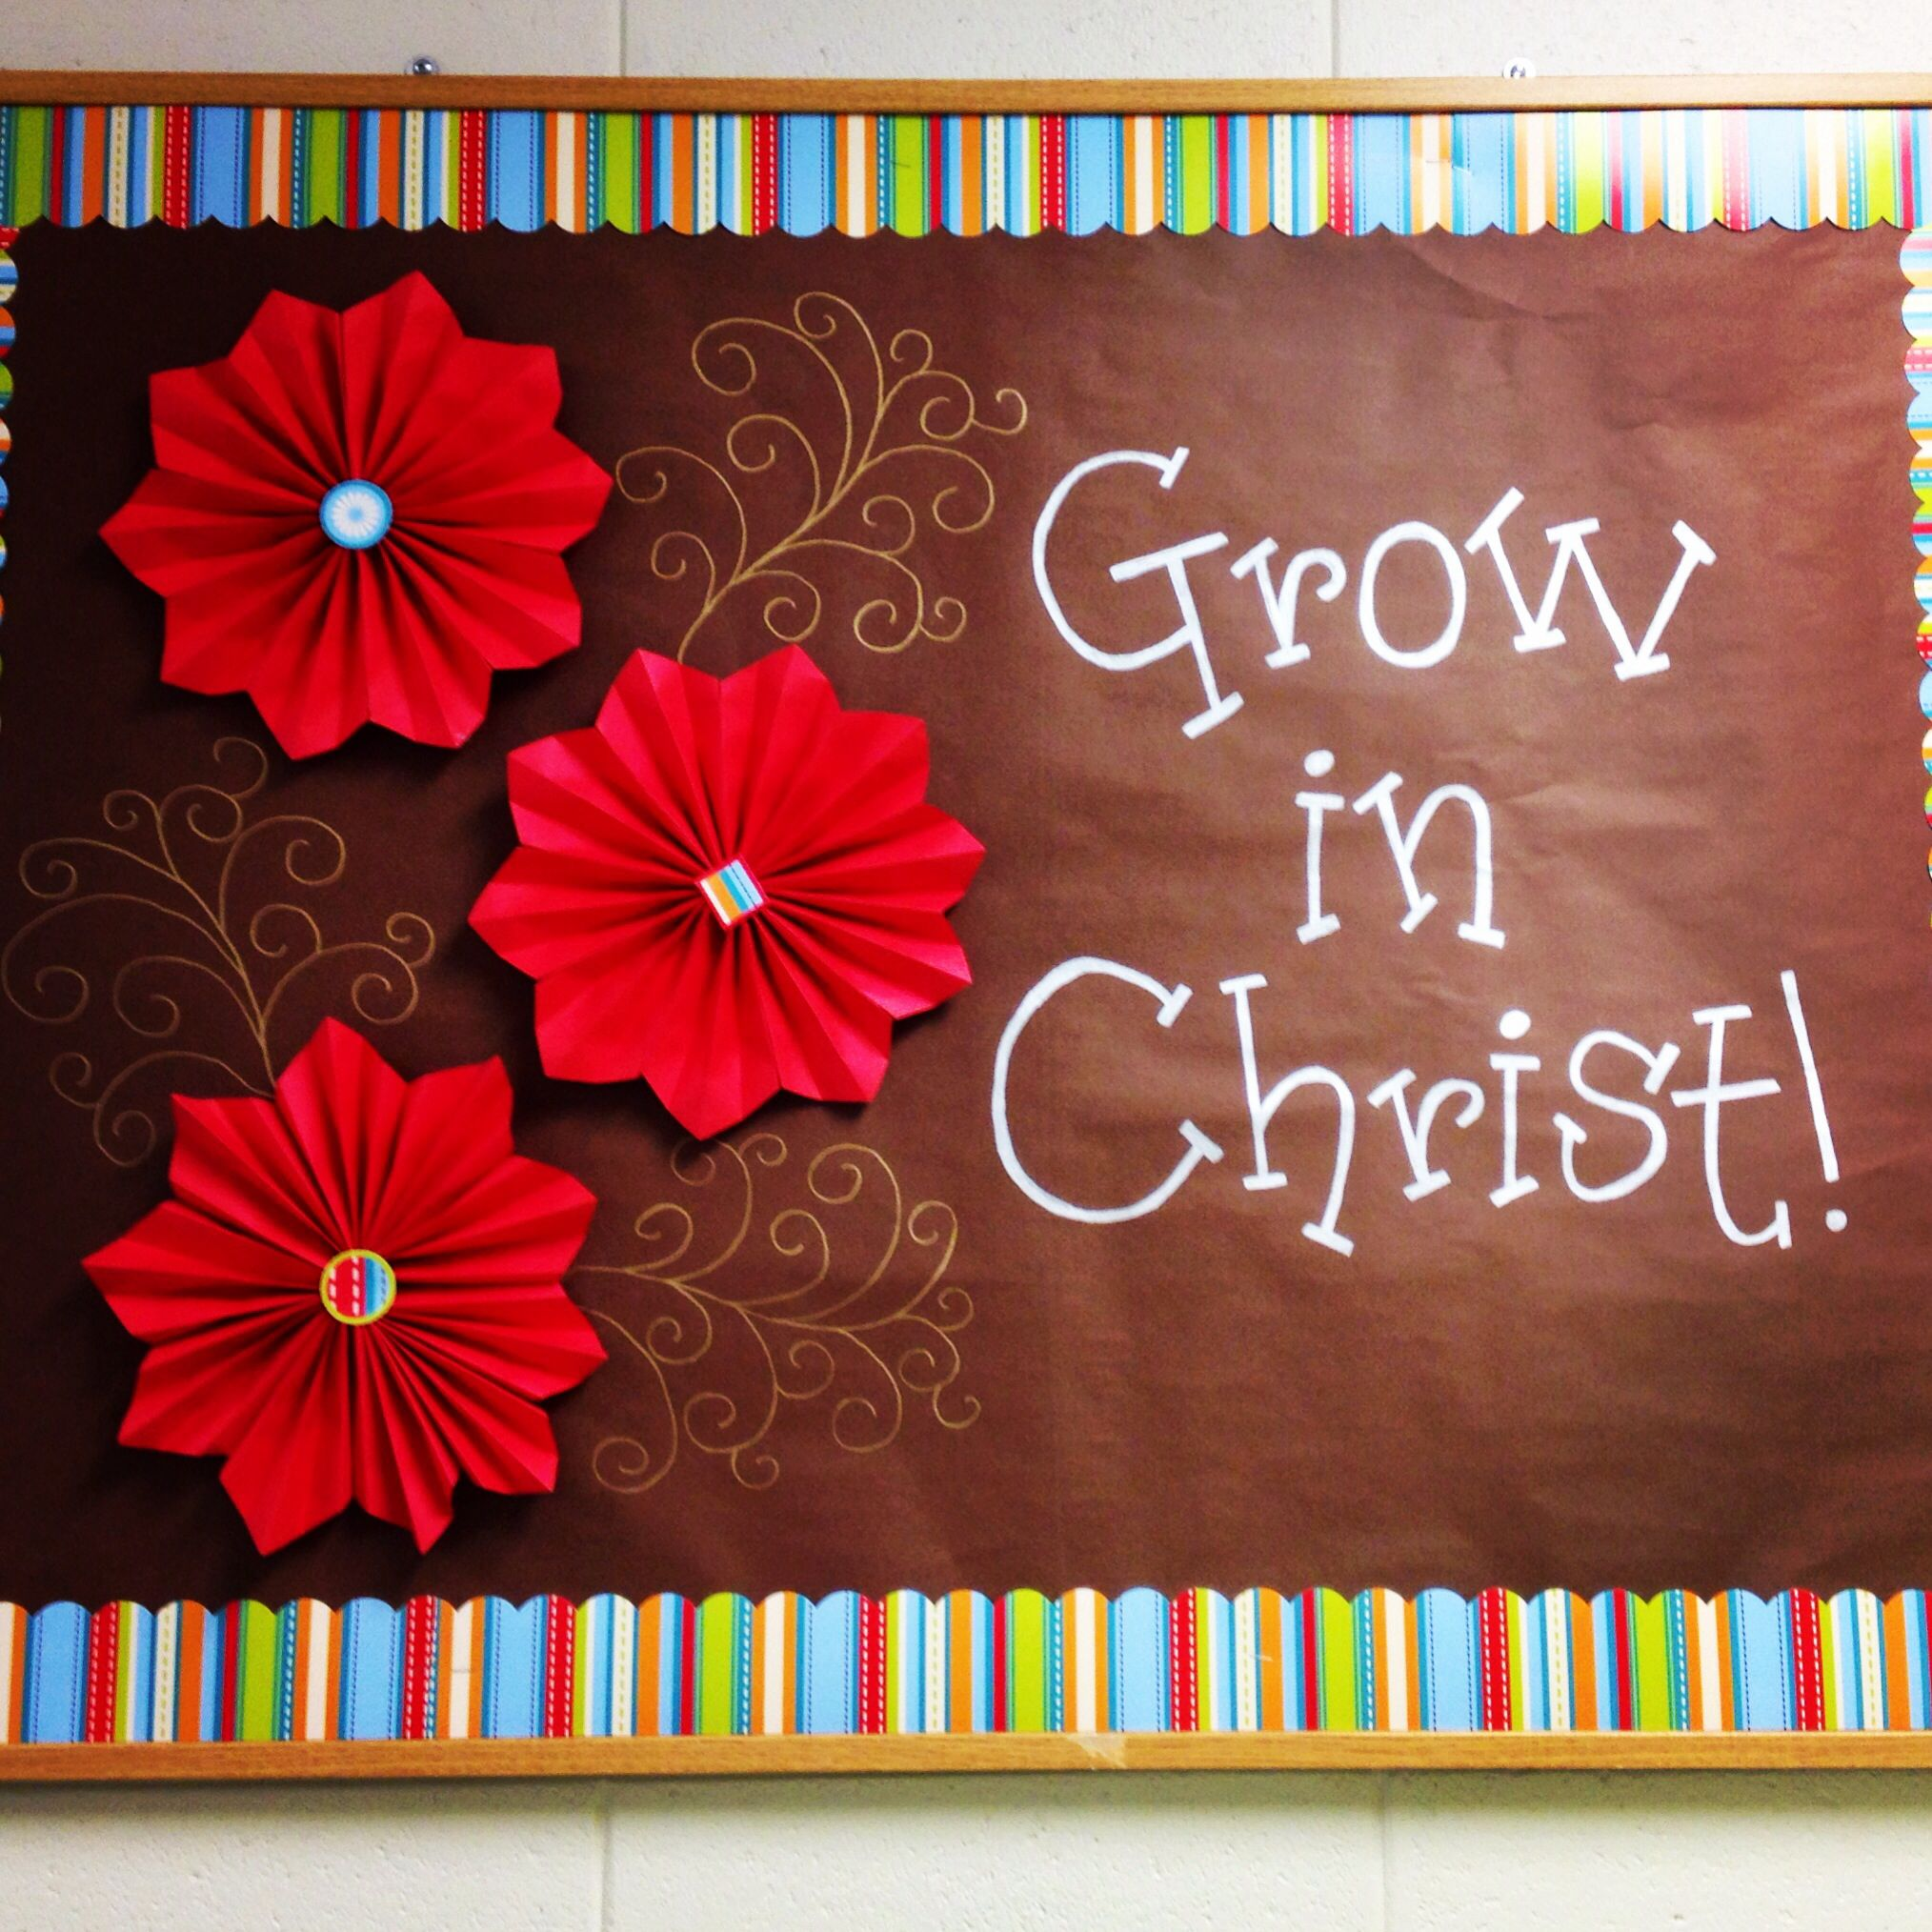 Christian Quotes For Bulletin Boards on Library Bulletins For Spring